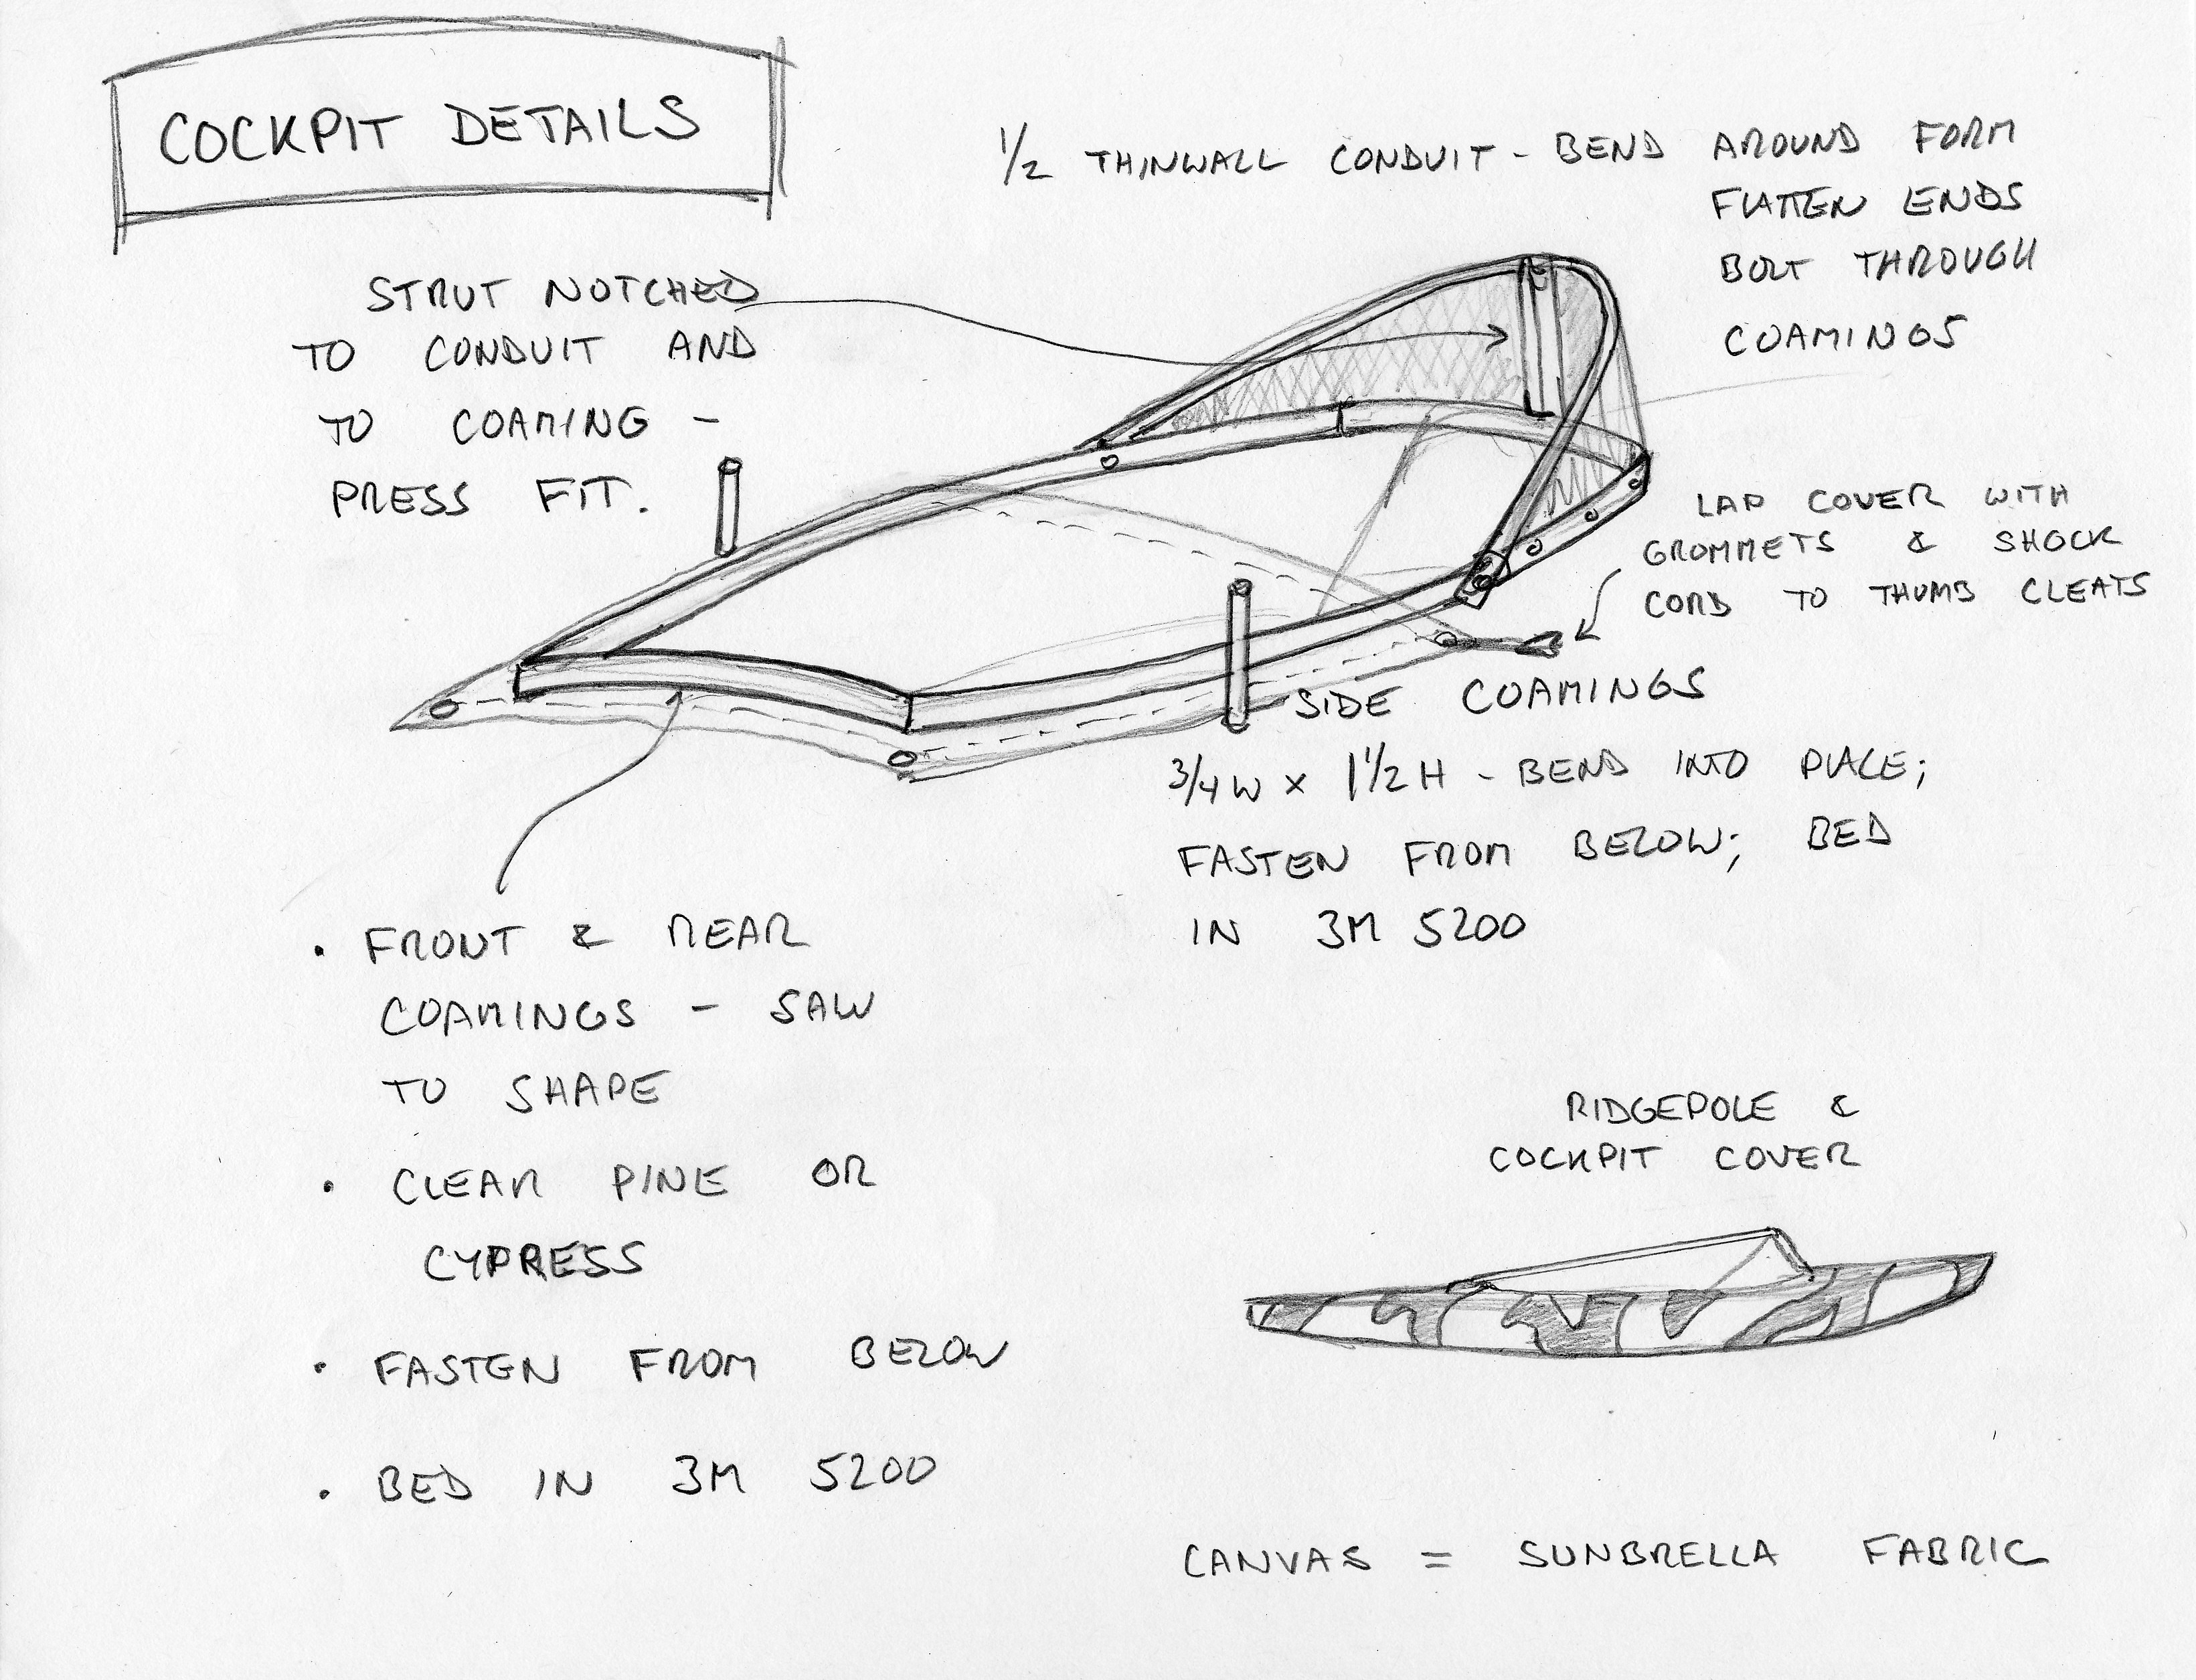 Gilgo gunboat steven jay sanford sunfish conversion notes page 1 sunfish conversion notes page 3 pooptronica